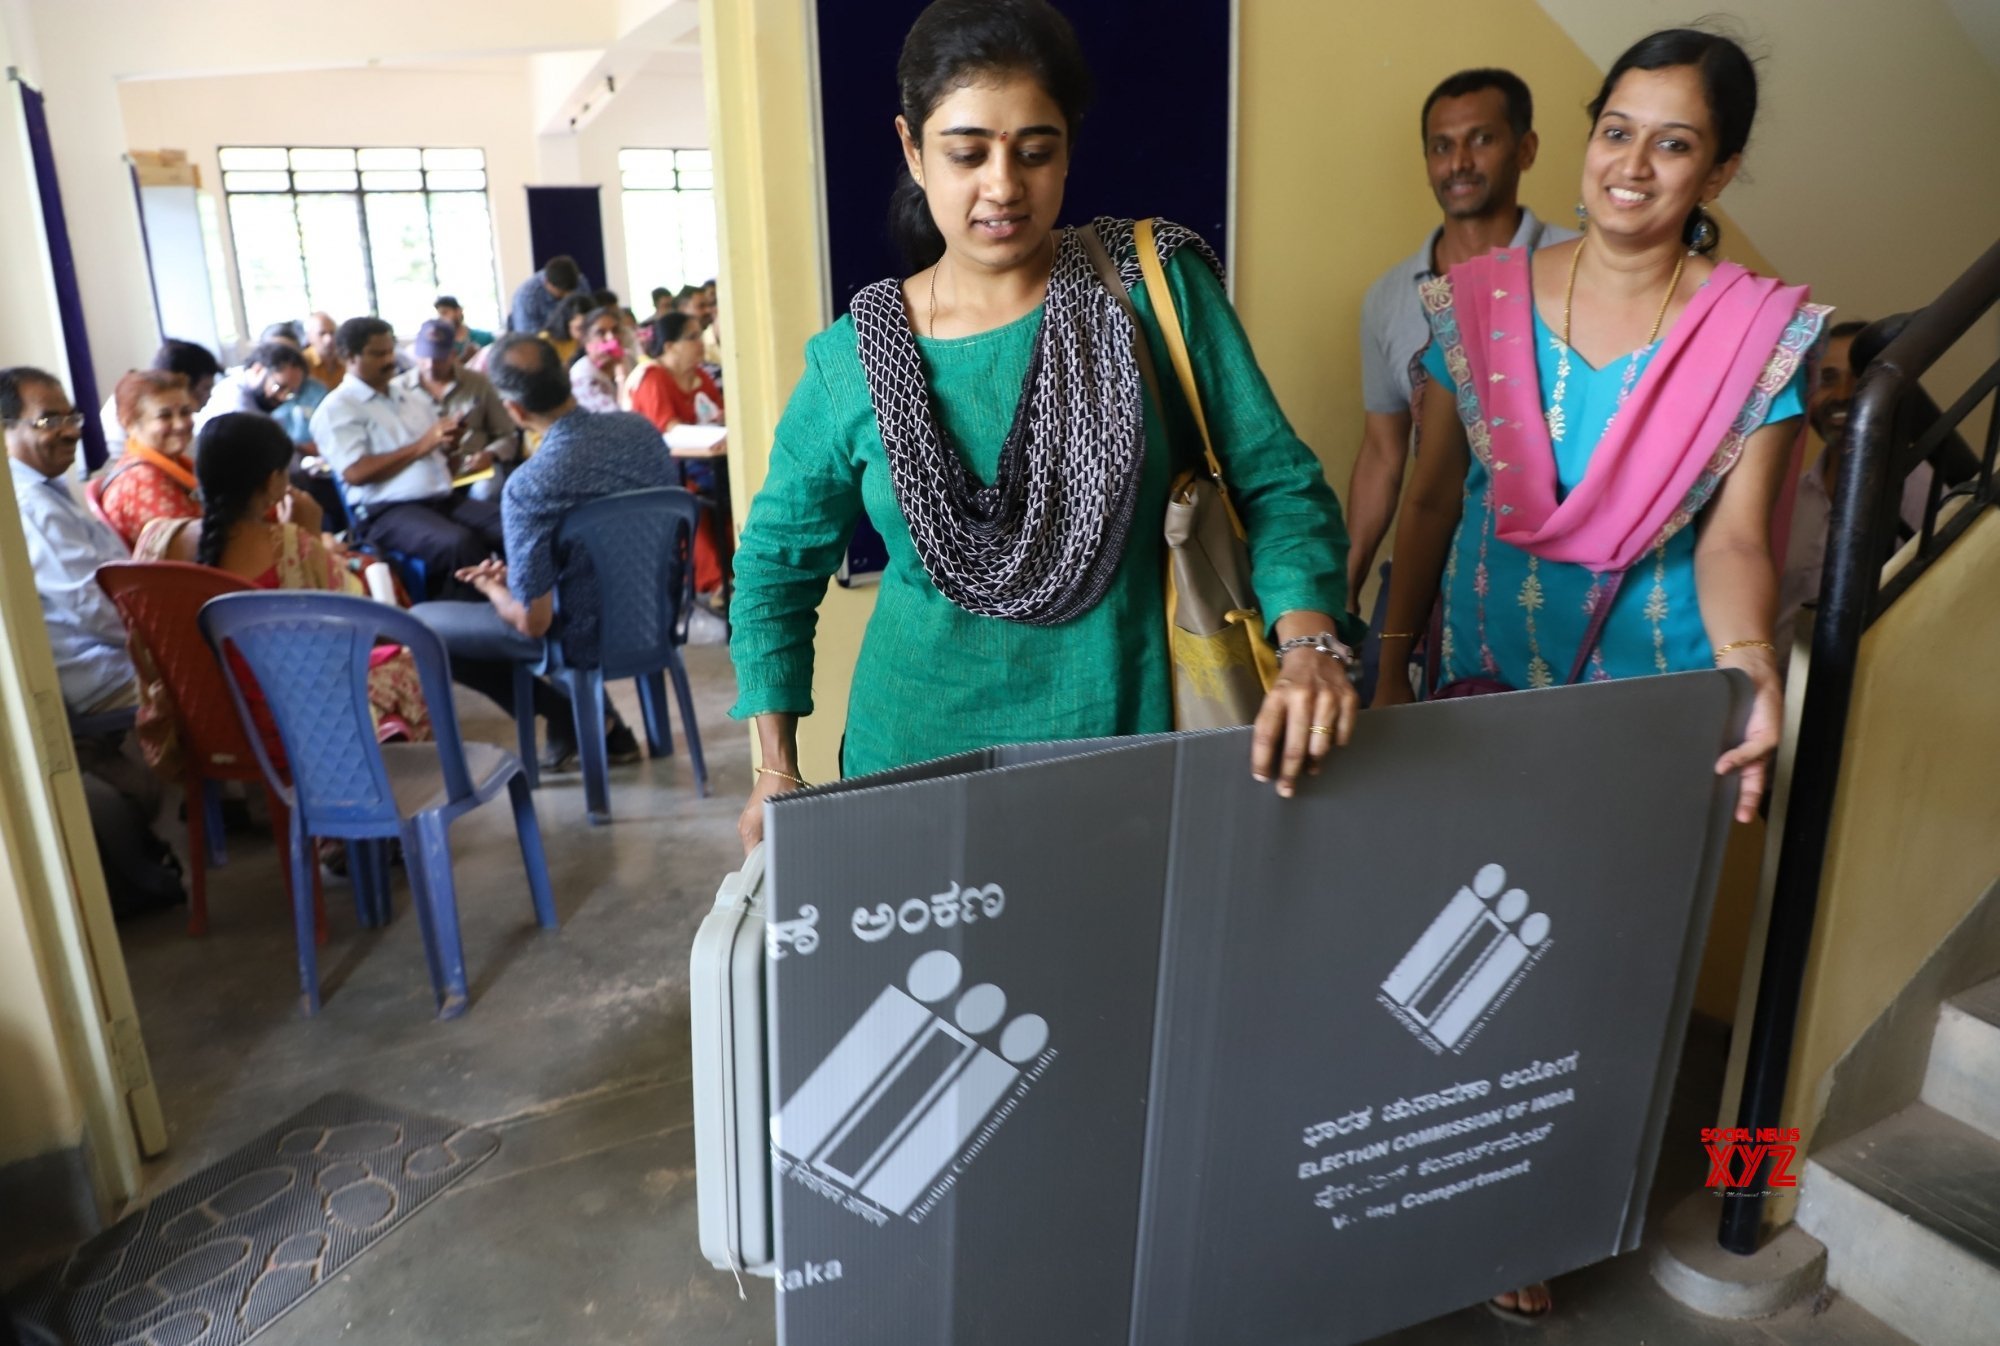 Bengaluru: 2019 Lok Sabha elections - Polling officials collect EVMs and other necessary inputs (Batch - 2) #Gallery